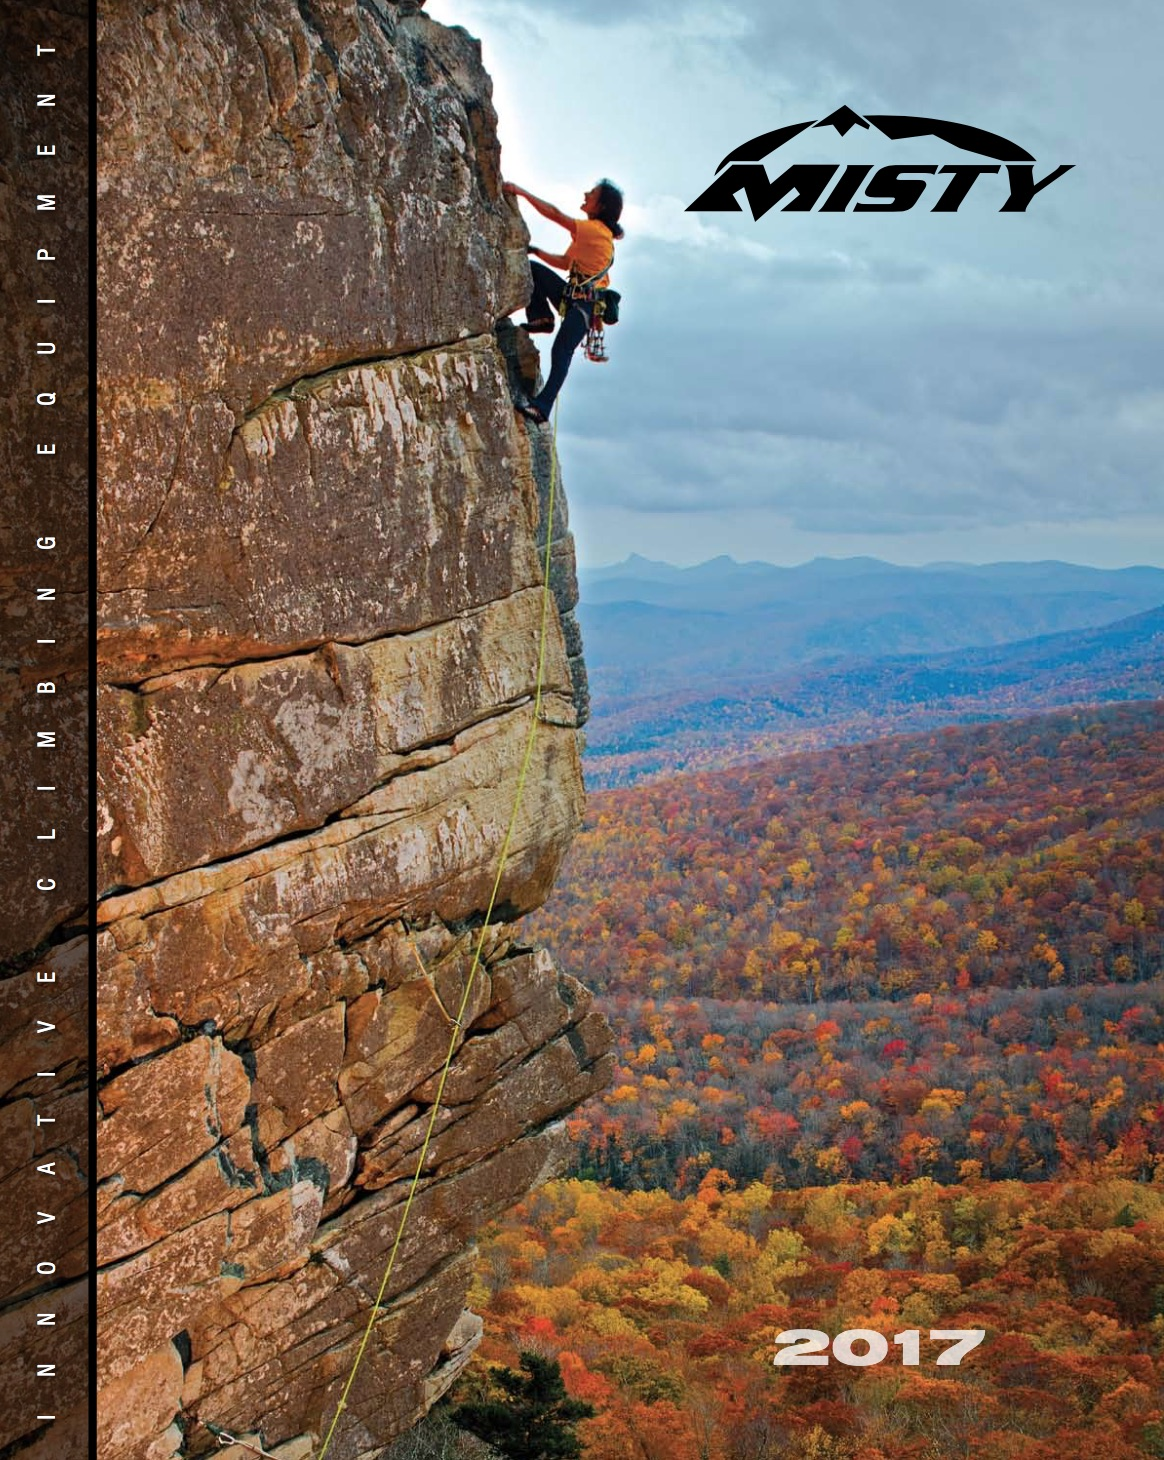 Misty Mountain 2017 Catalog Cover